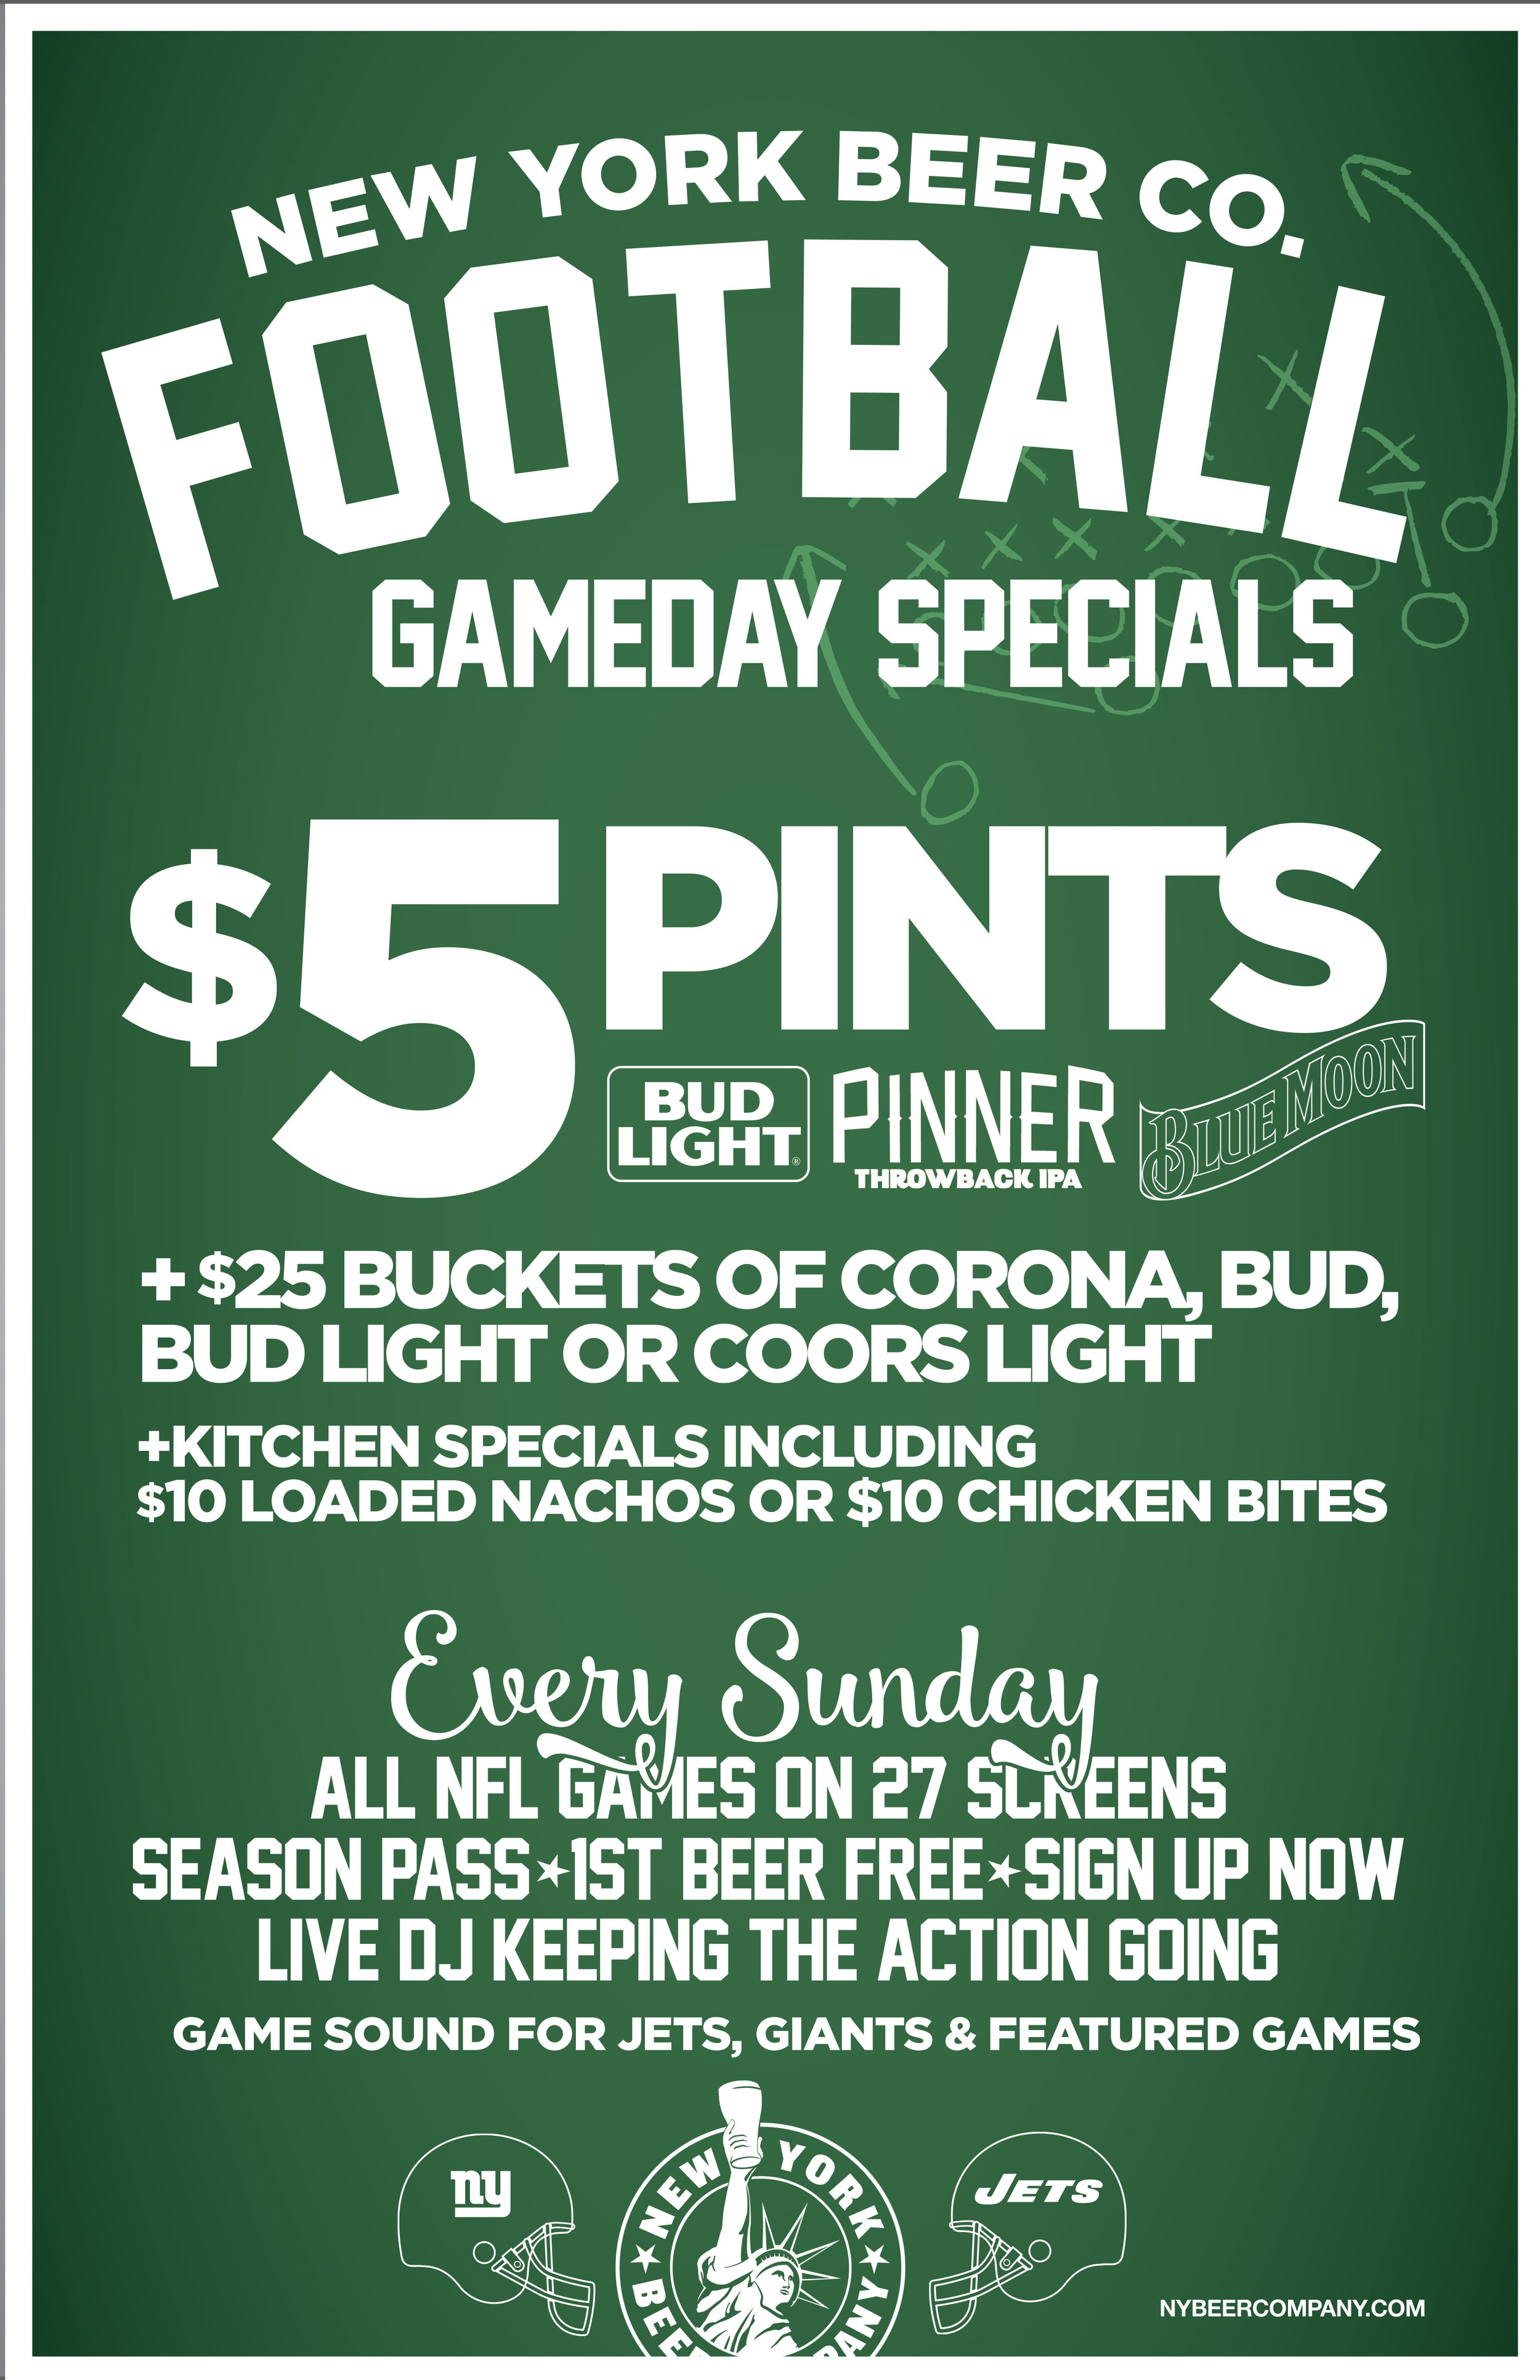 Beer Specials Nfl Sunday Football Gameday Week 7 New York Beer Company